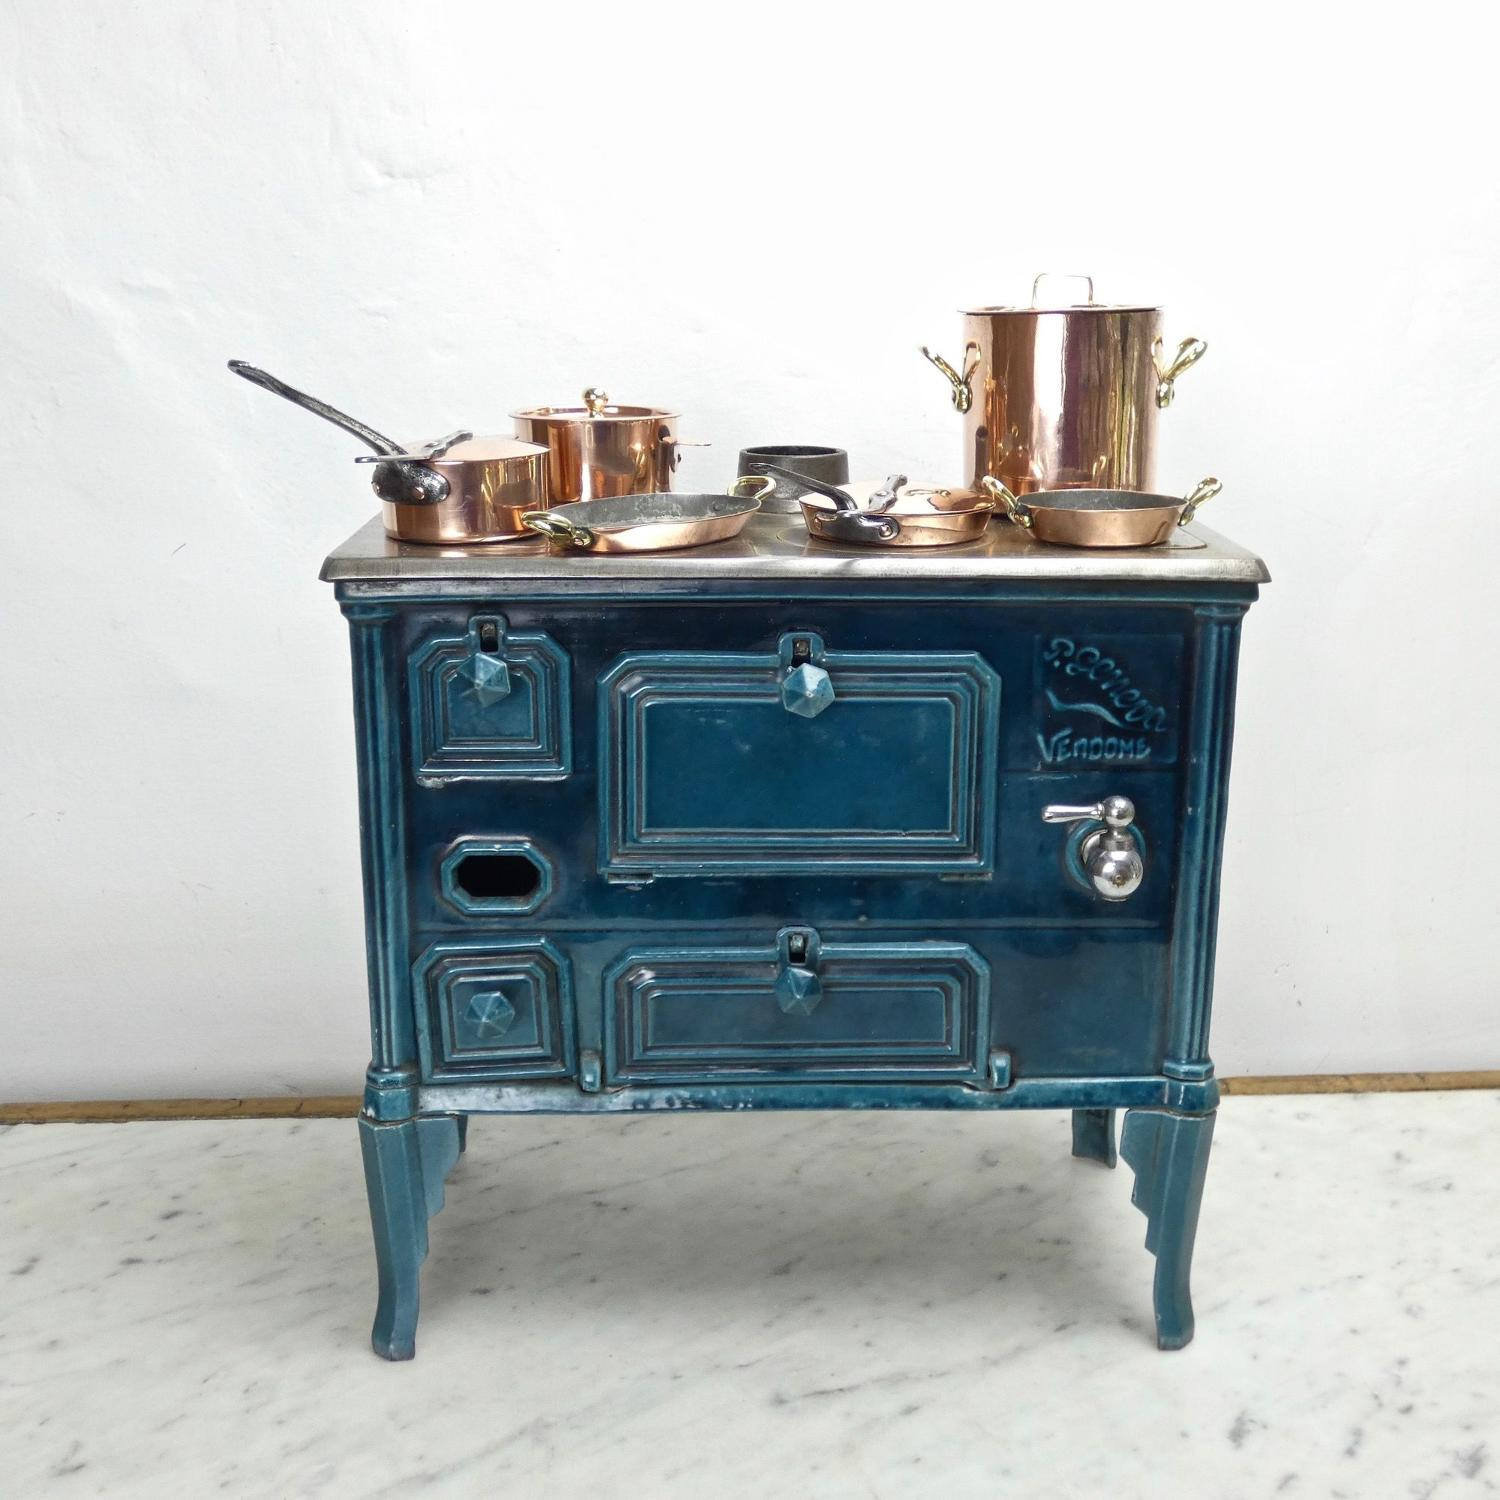 Miniature cast iron, enamelled stove with copper cookware.